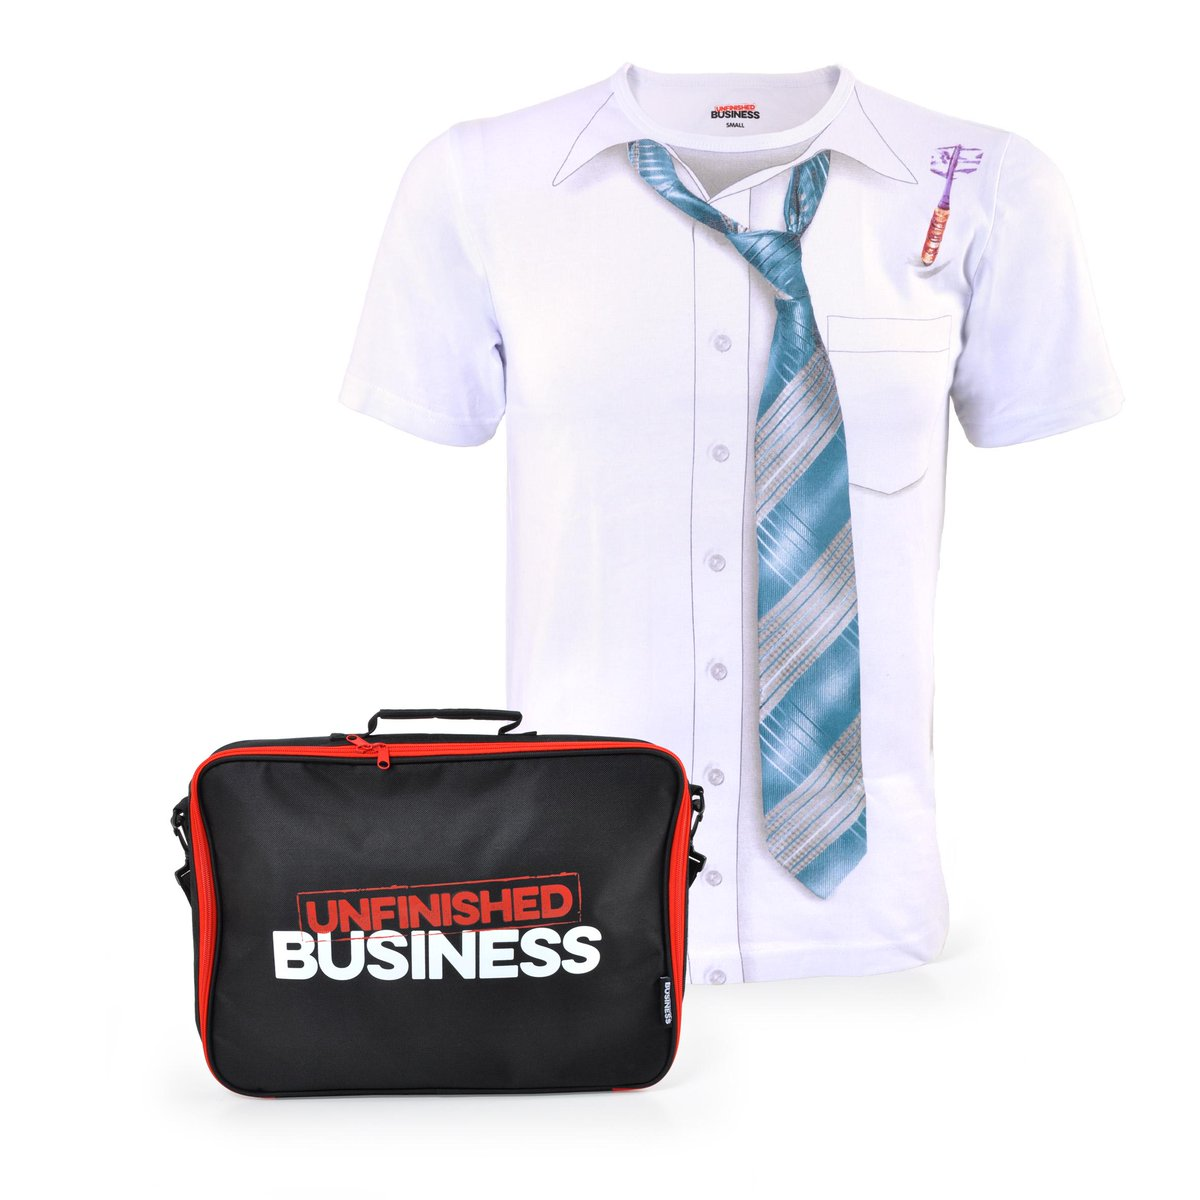 #UnfinishedBusiness is in cinemas today! RT for your chance to #win one of three t-shirts & laptop cases, like a boss http://t.co/IJouYoszgl